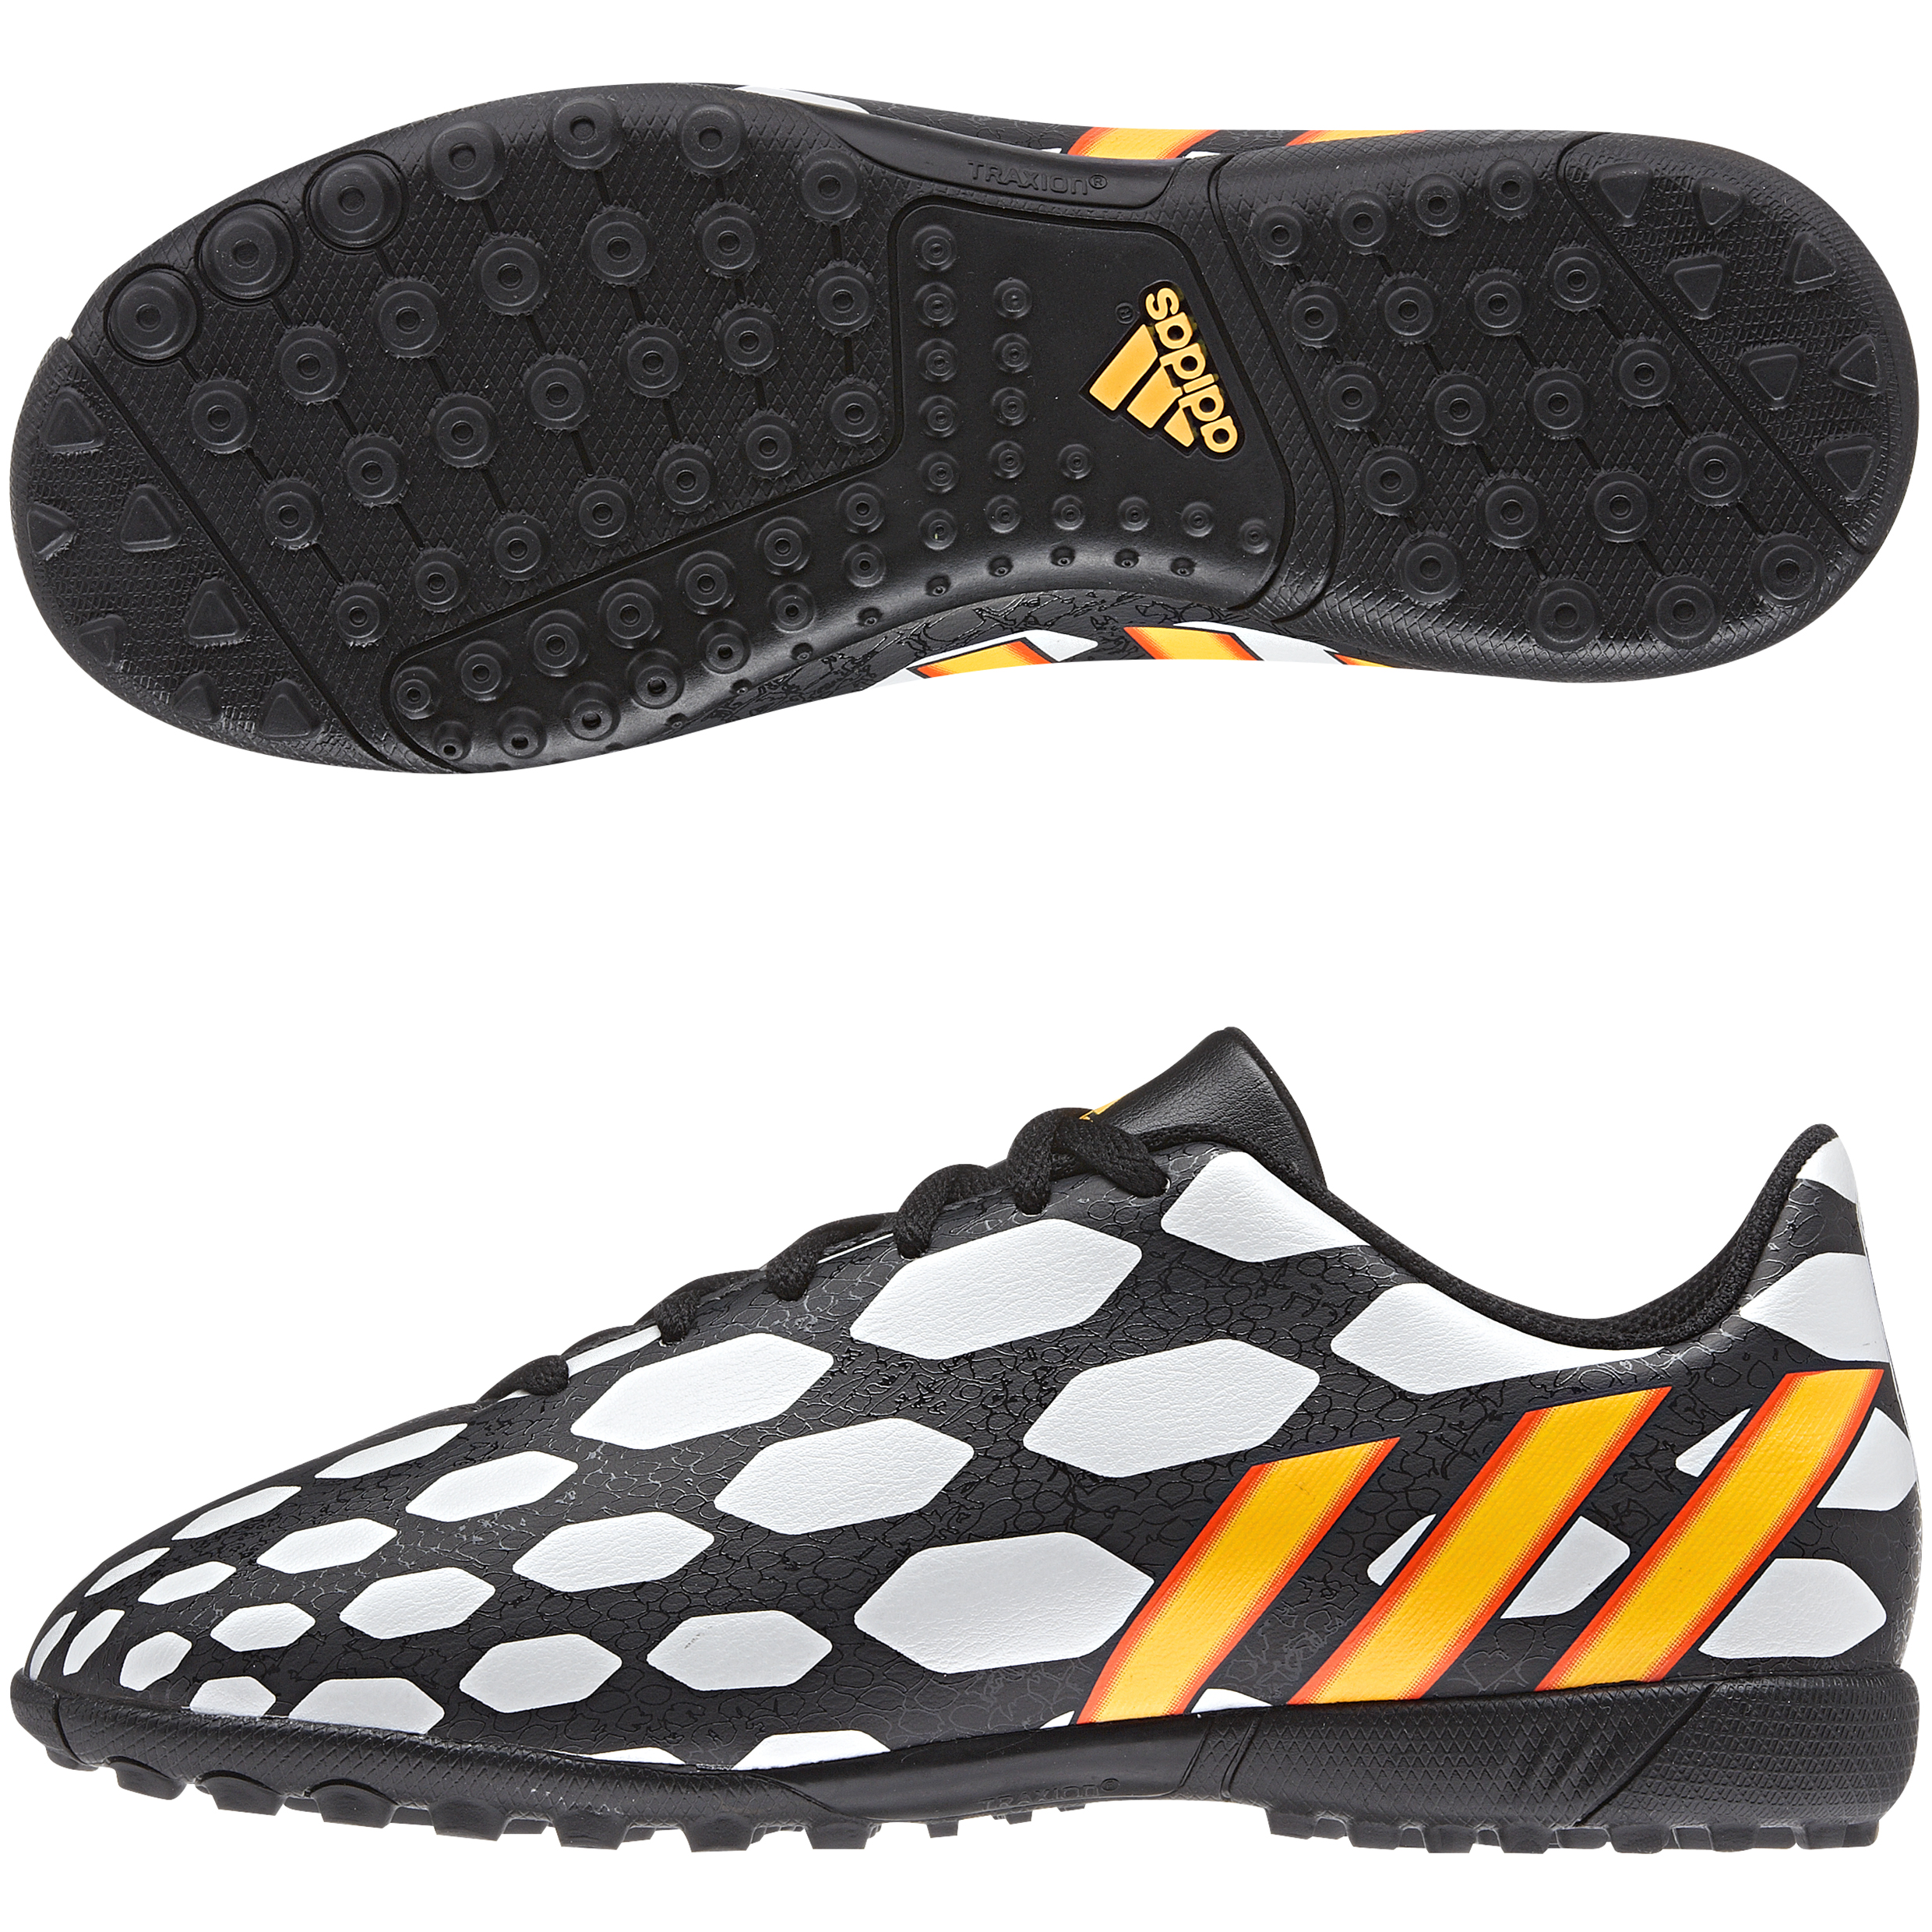 Adidas Predito LZ World Cup 2014 Astroturf Trainers - Kids Black